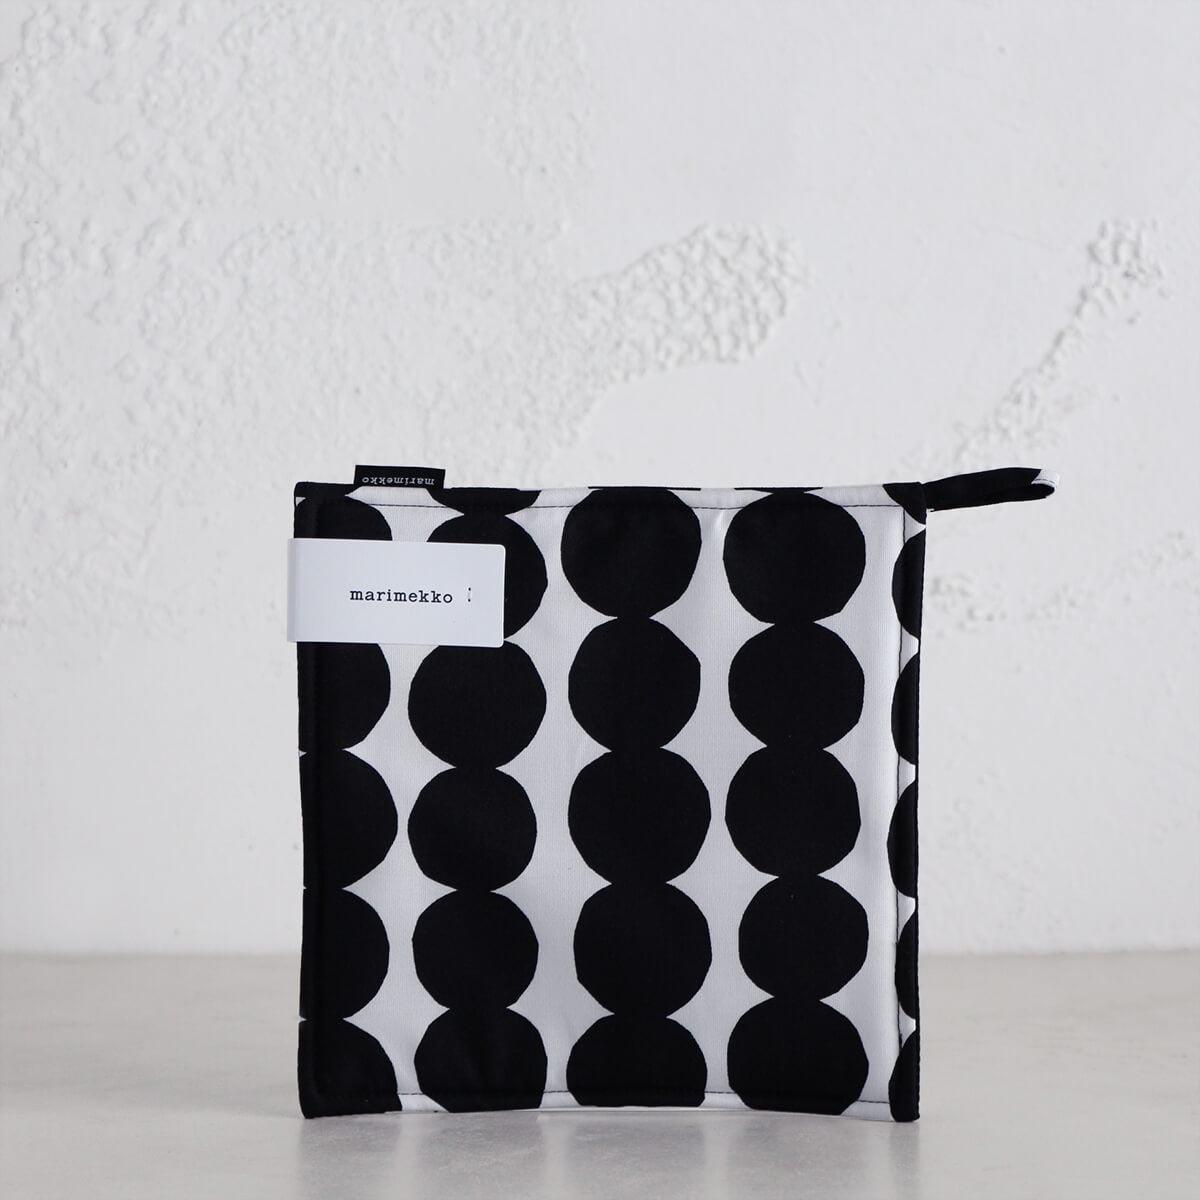 MARIMEKKO  |  RASYMATTO POT HOLDER  |  WHITE + BLACK SPOT  |  OVEN MITT